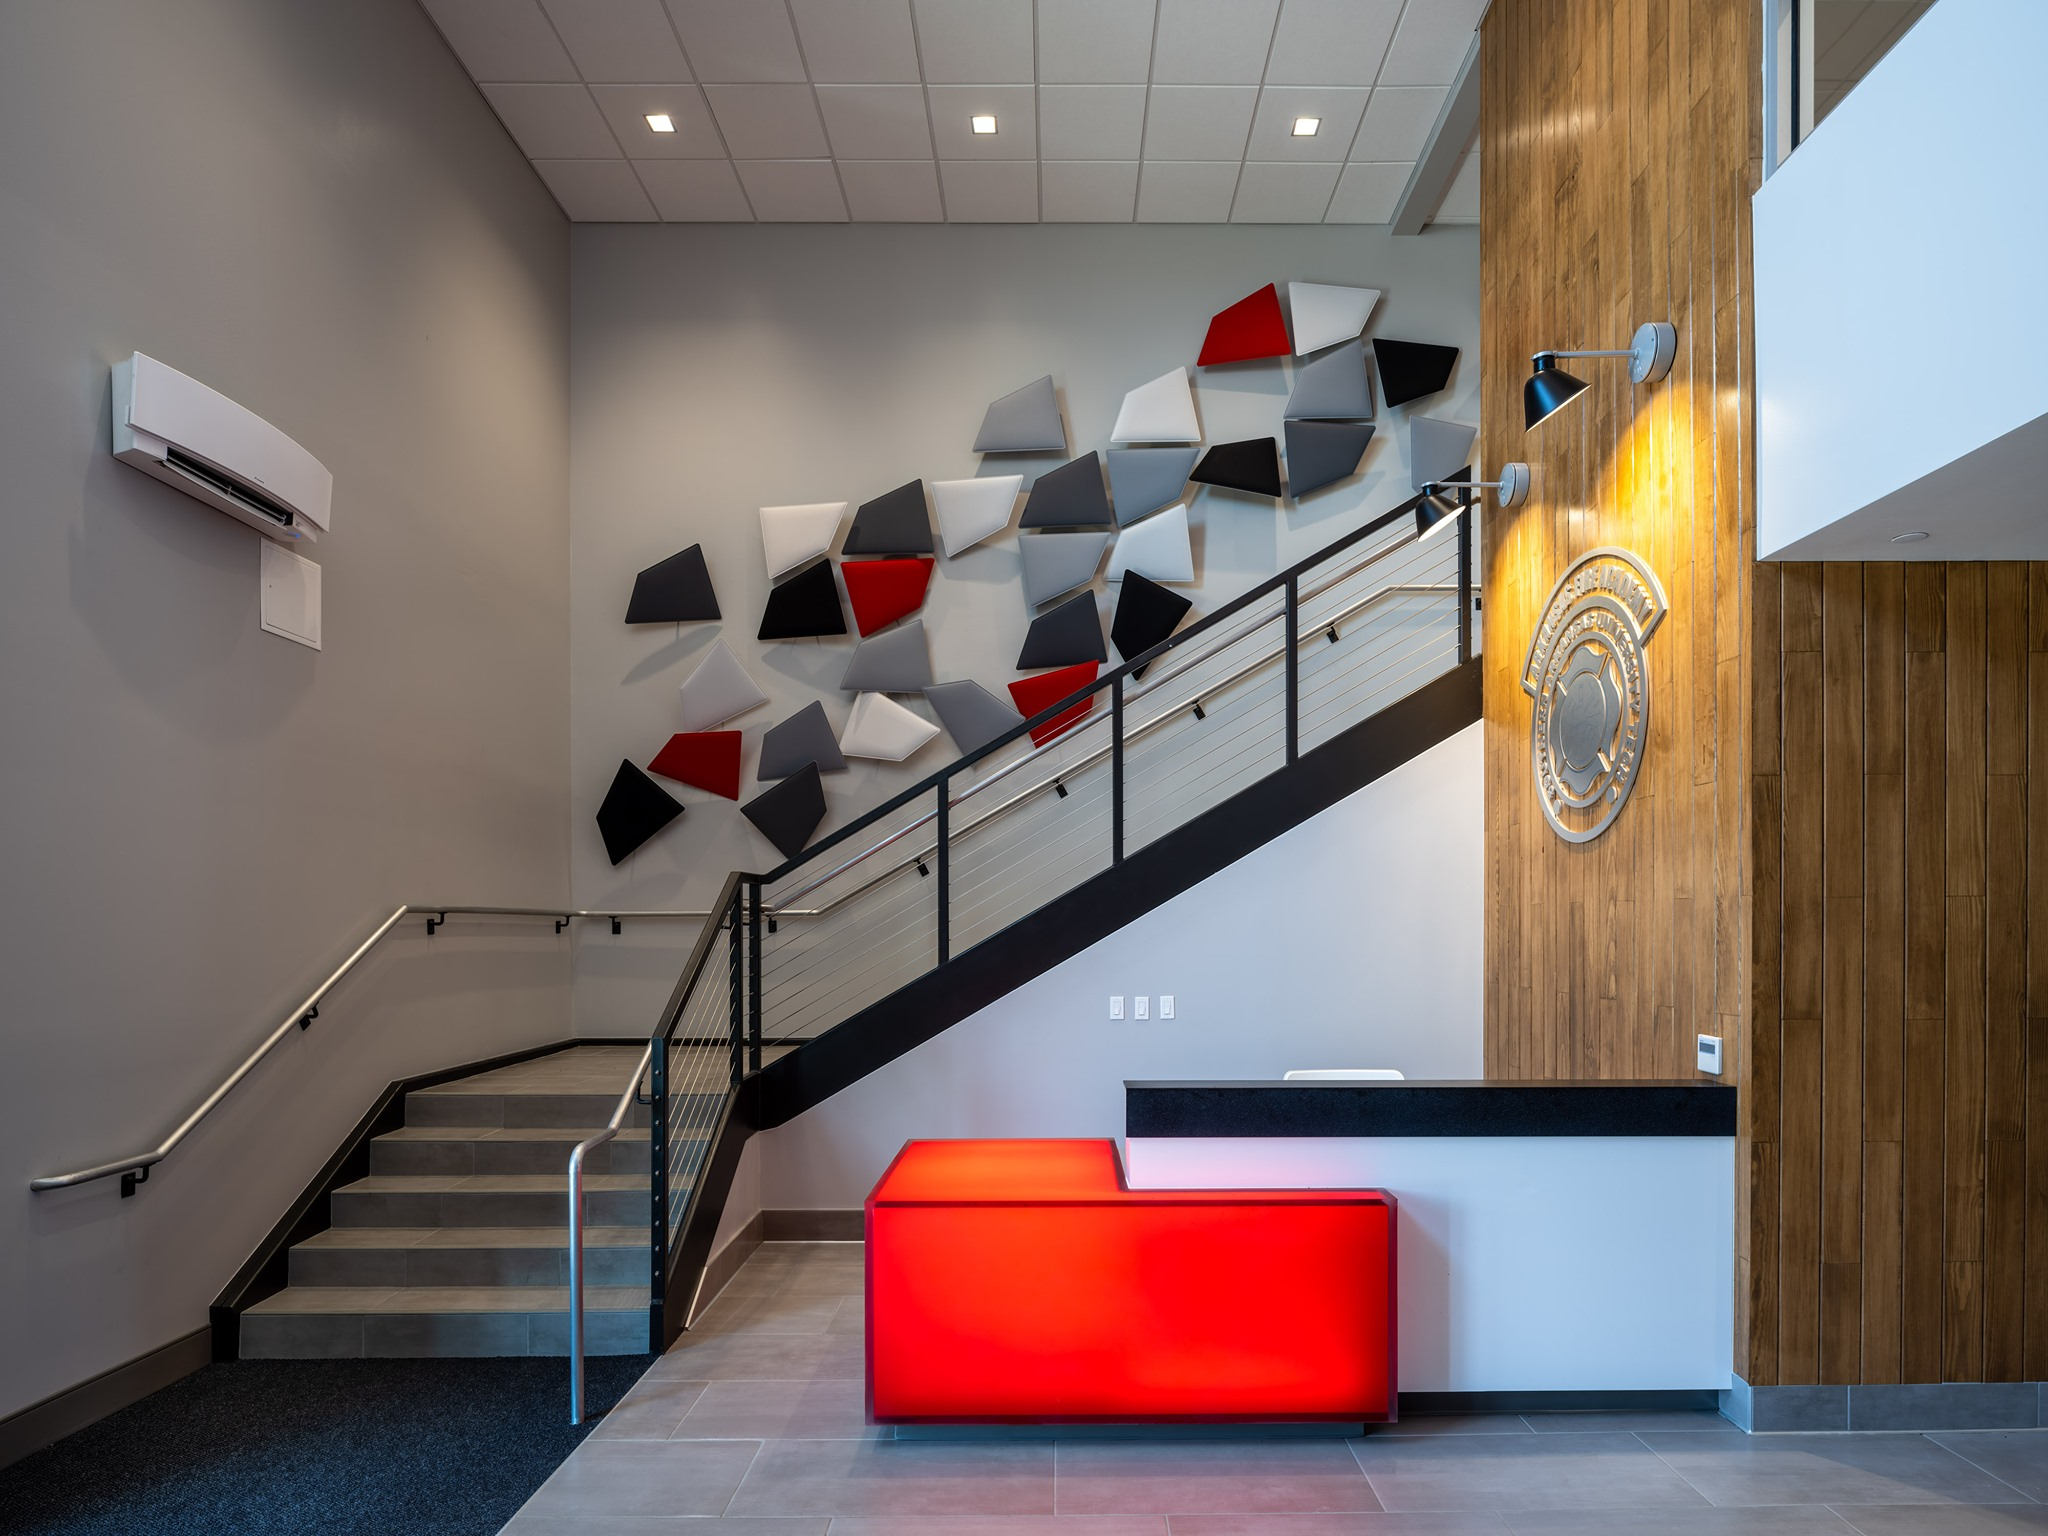 stairwell and modular art on the walls